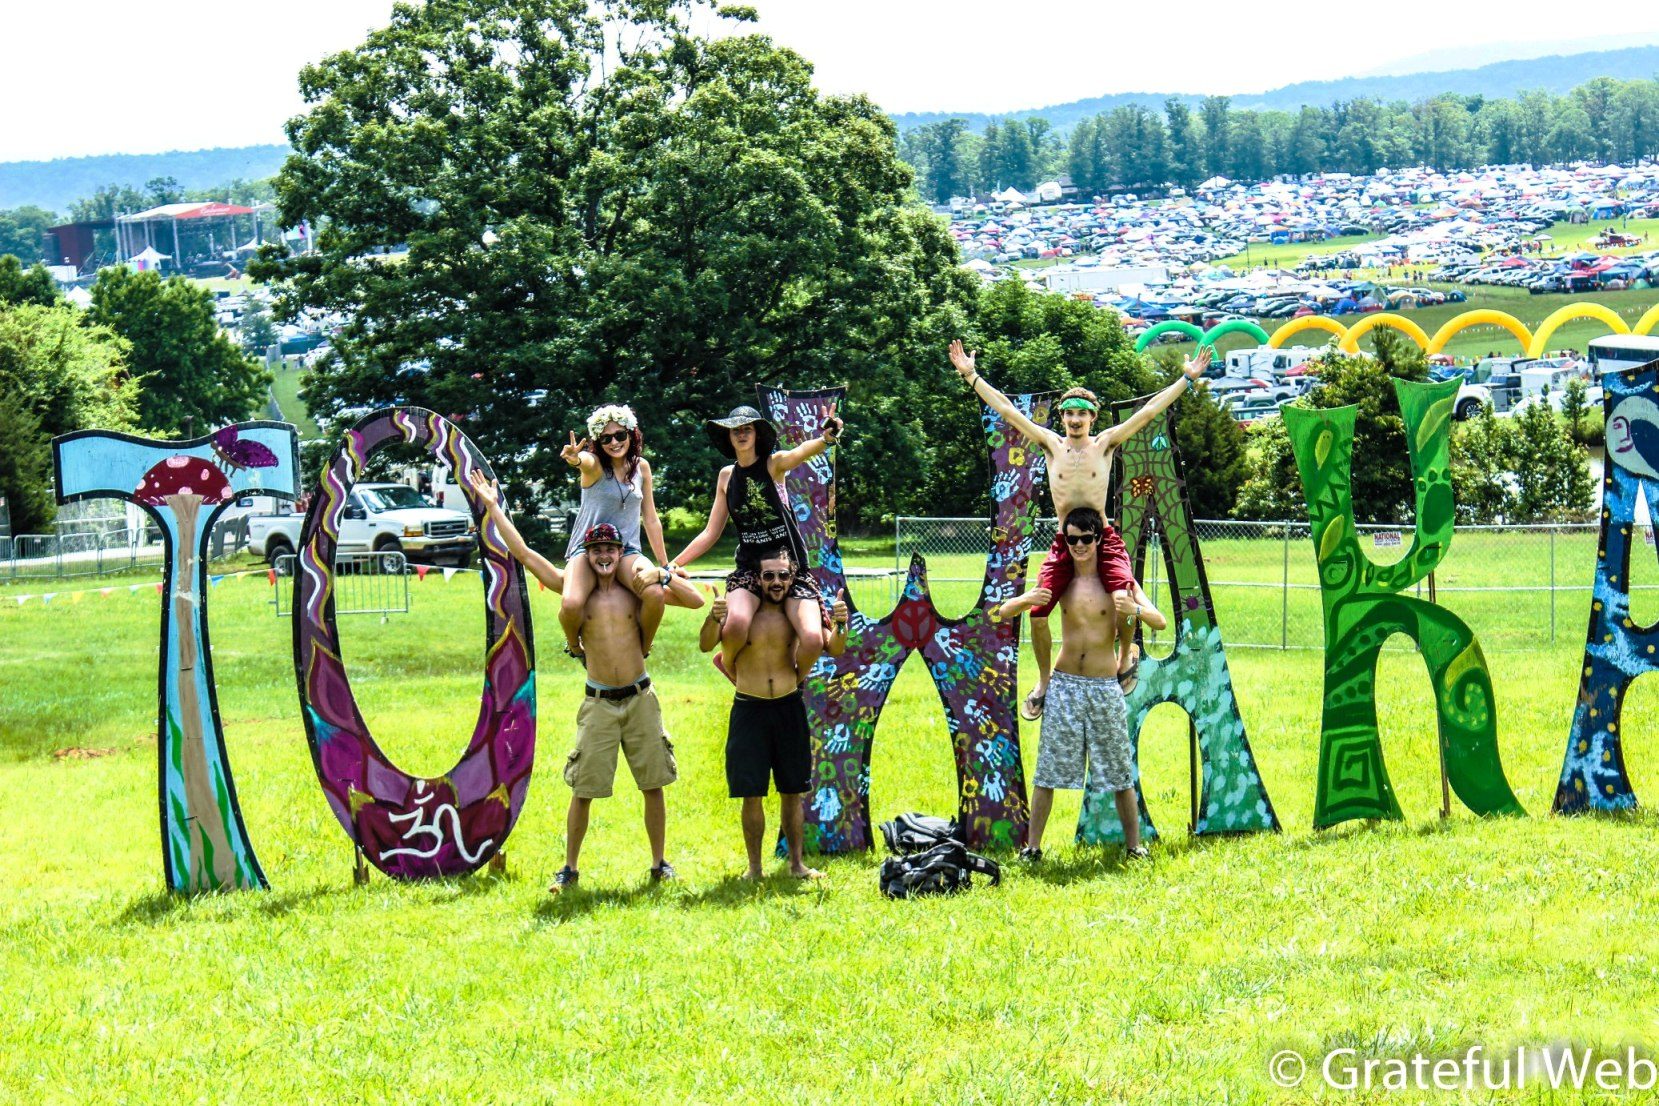 Wakarusa 2015 | Review and Photos